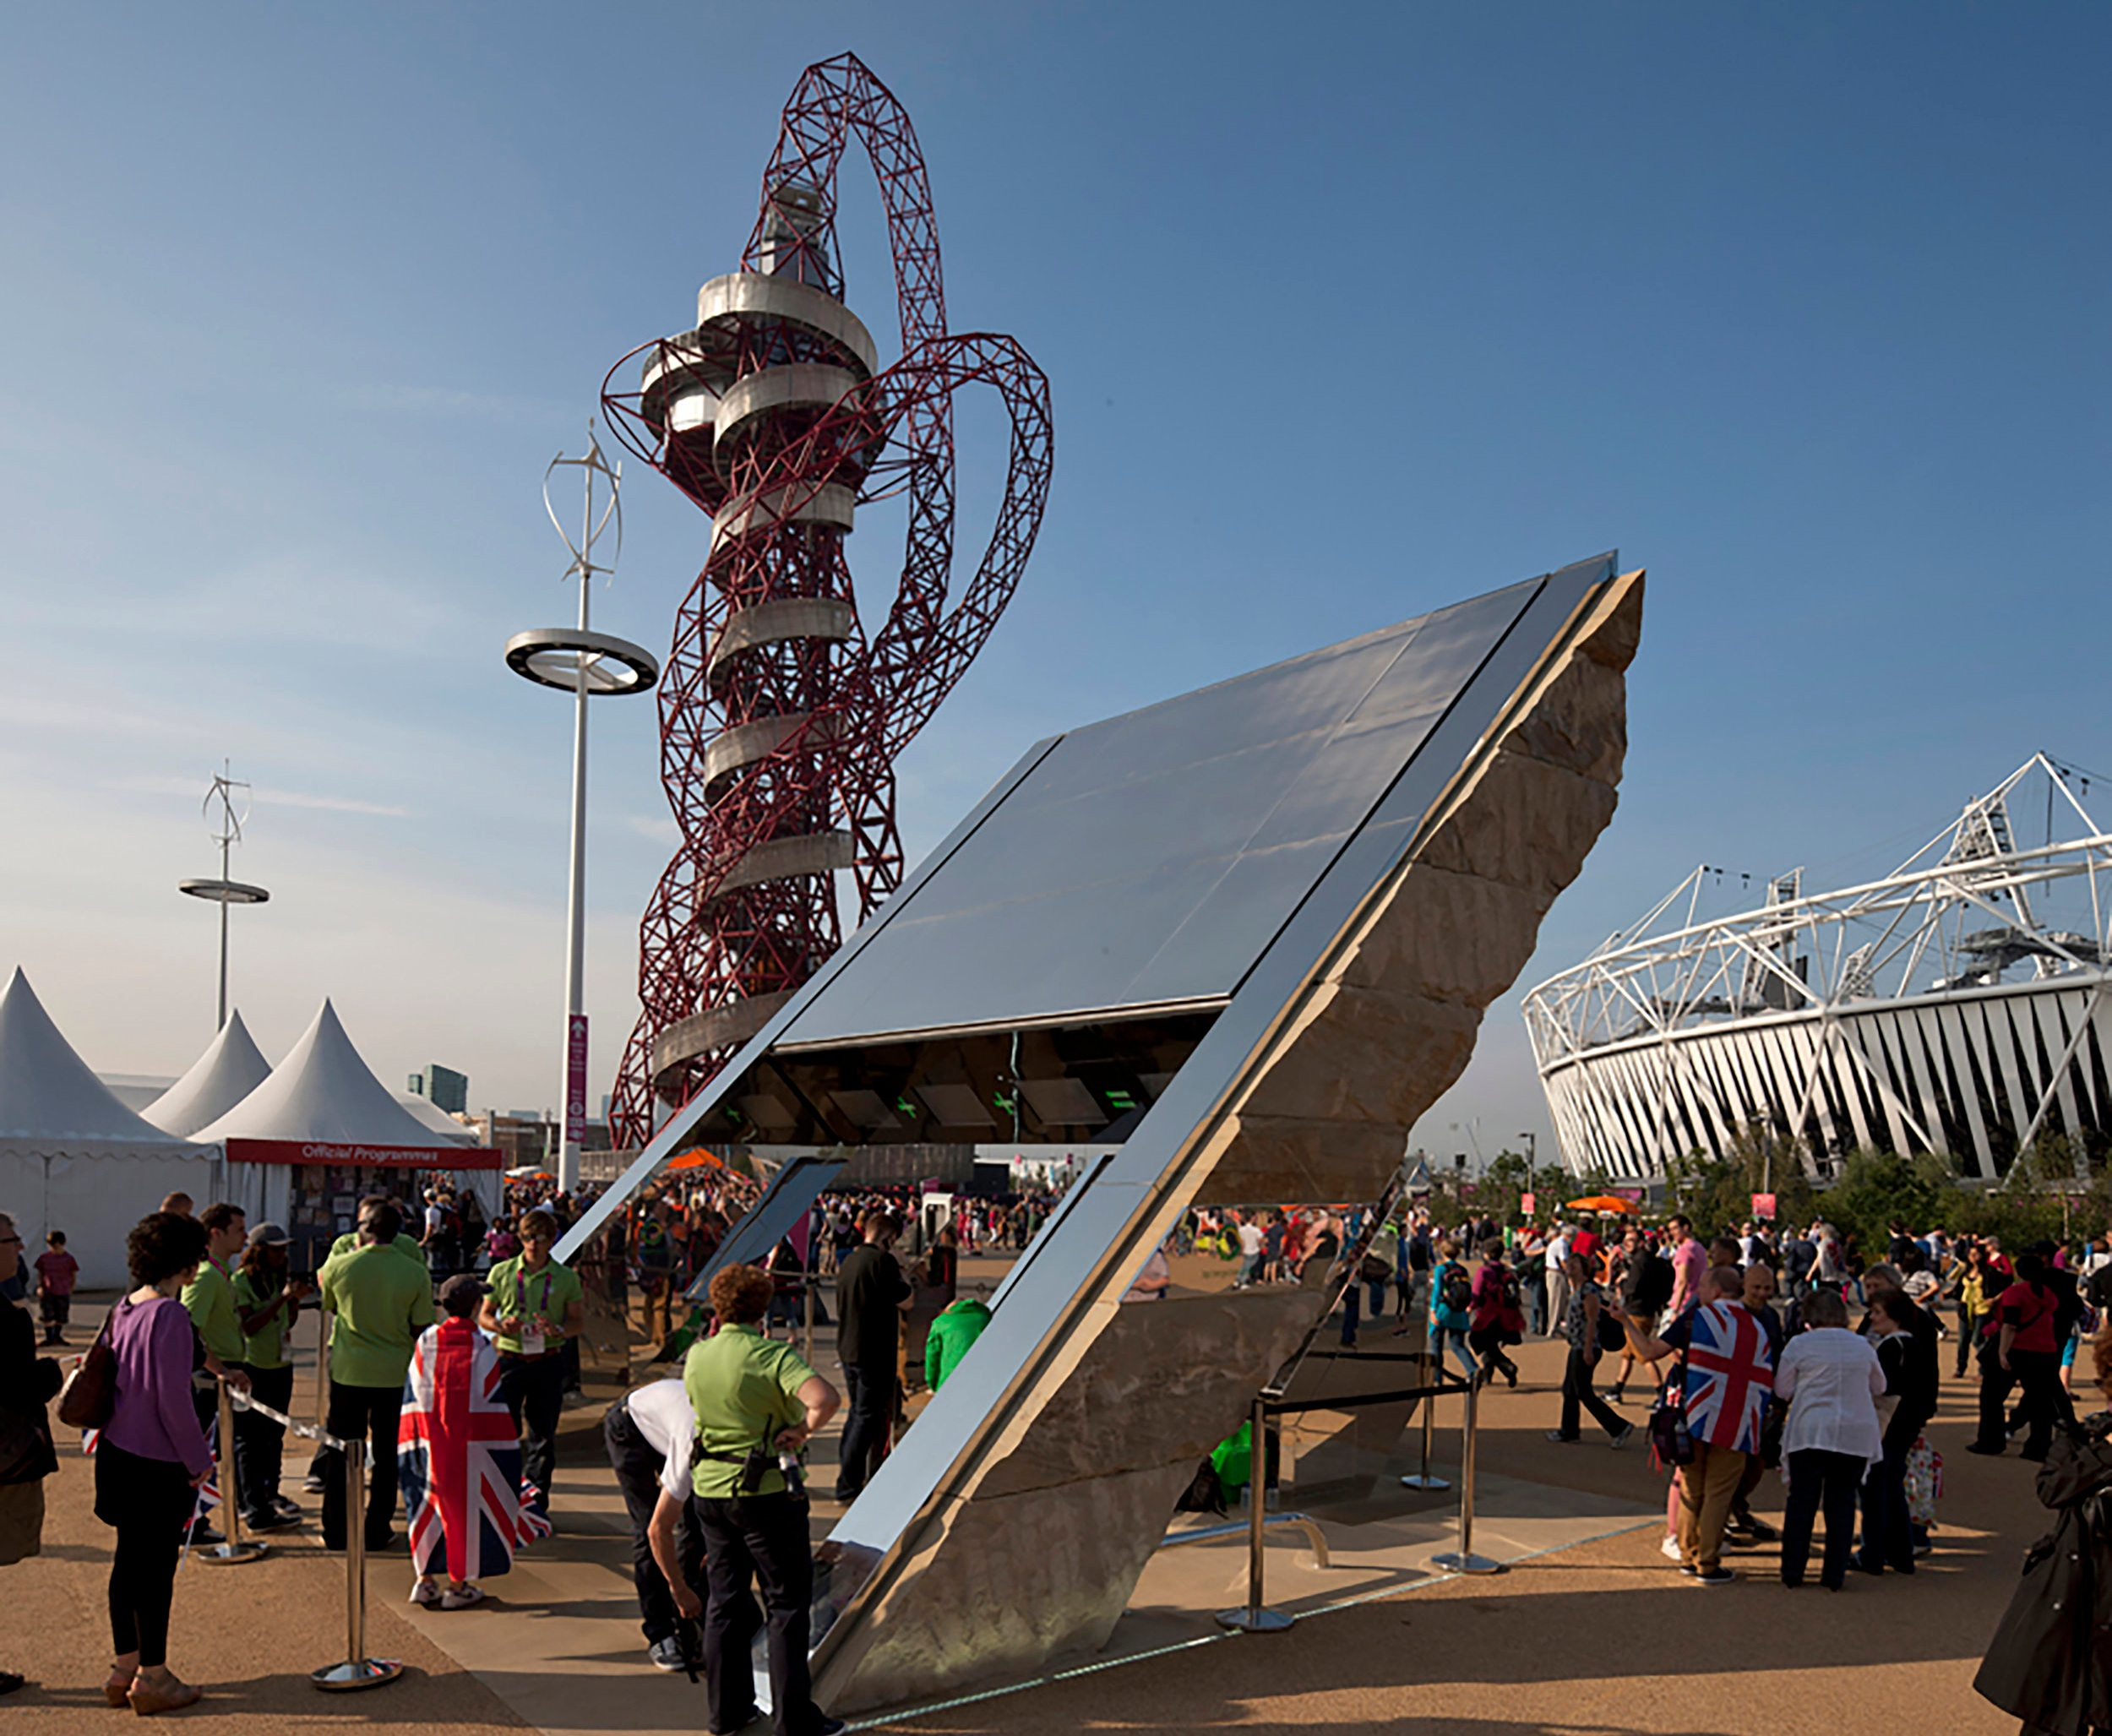 London 2012 Olympic BP Walk in the Park with KBW